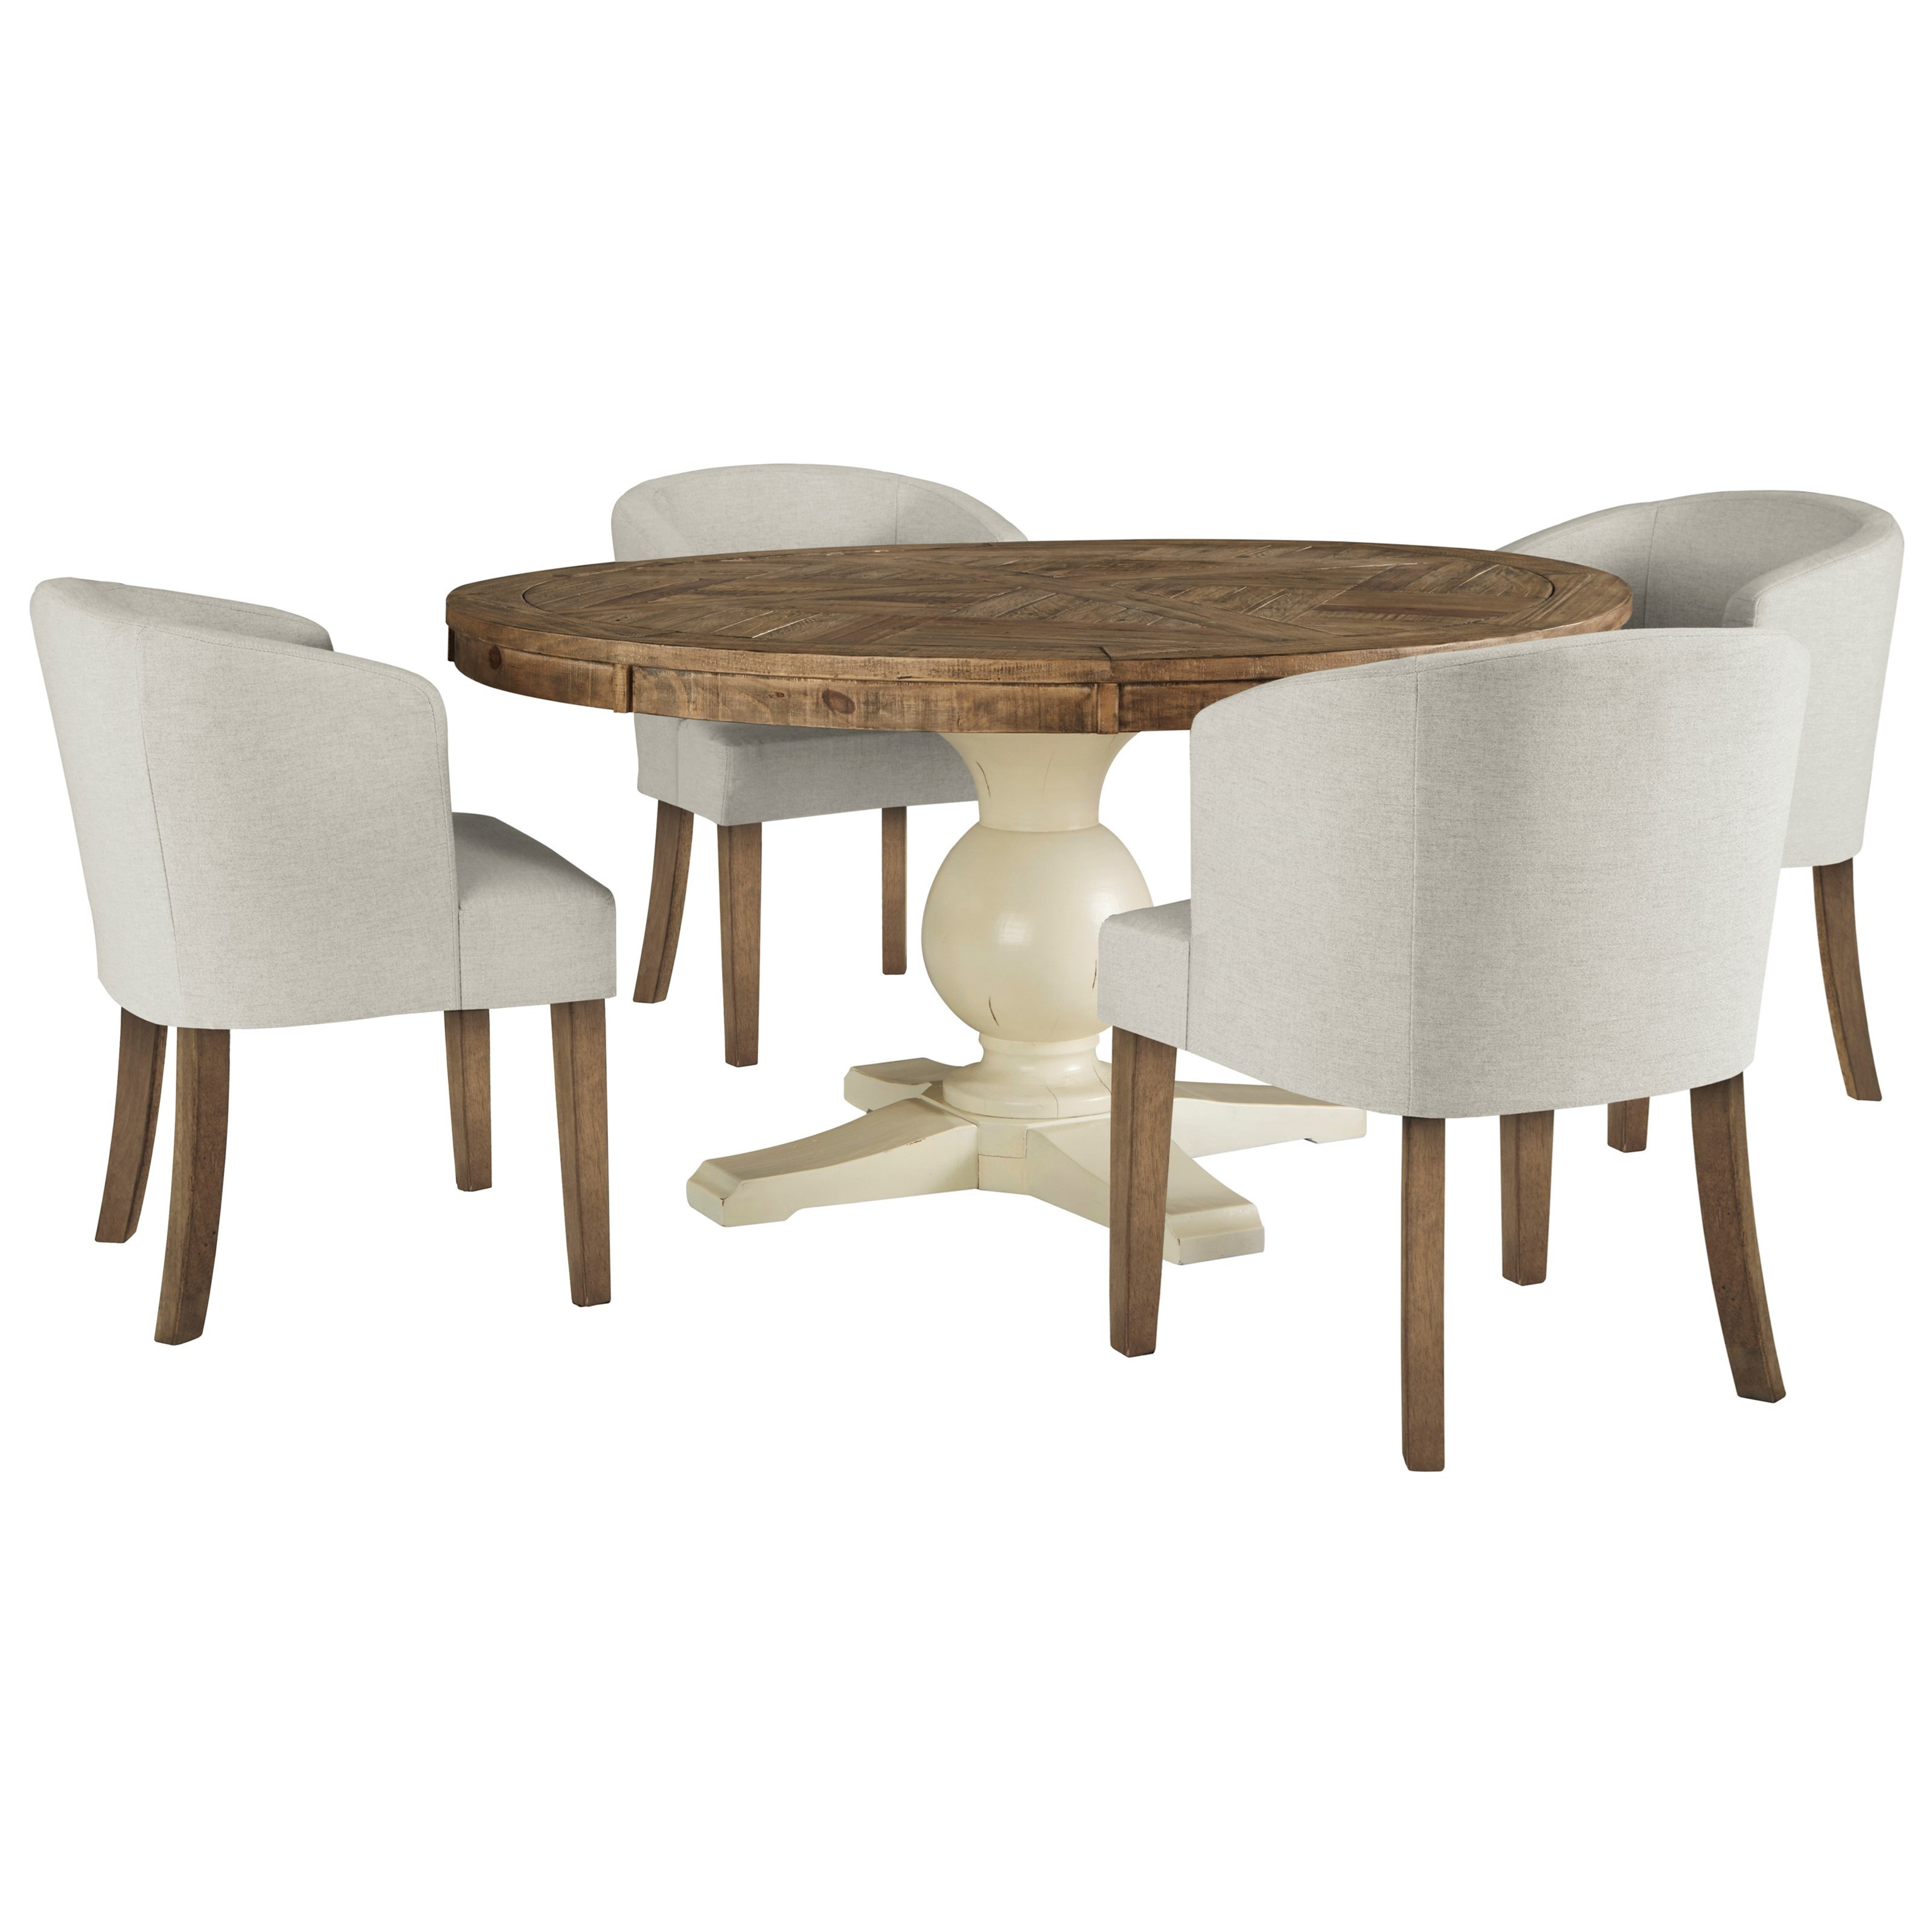 Ashley Furniture Table And Chairs Signature Design By Ashley Grindleburg 5 Piece Round Table